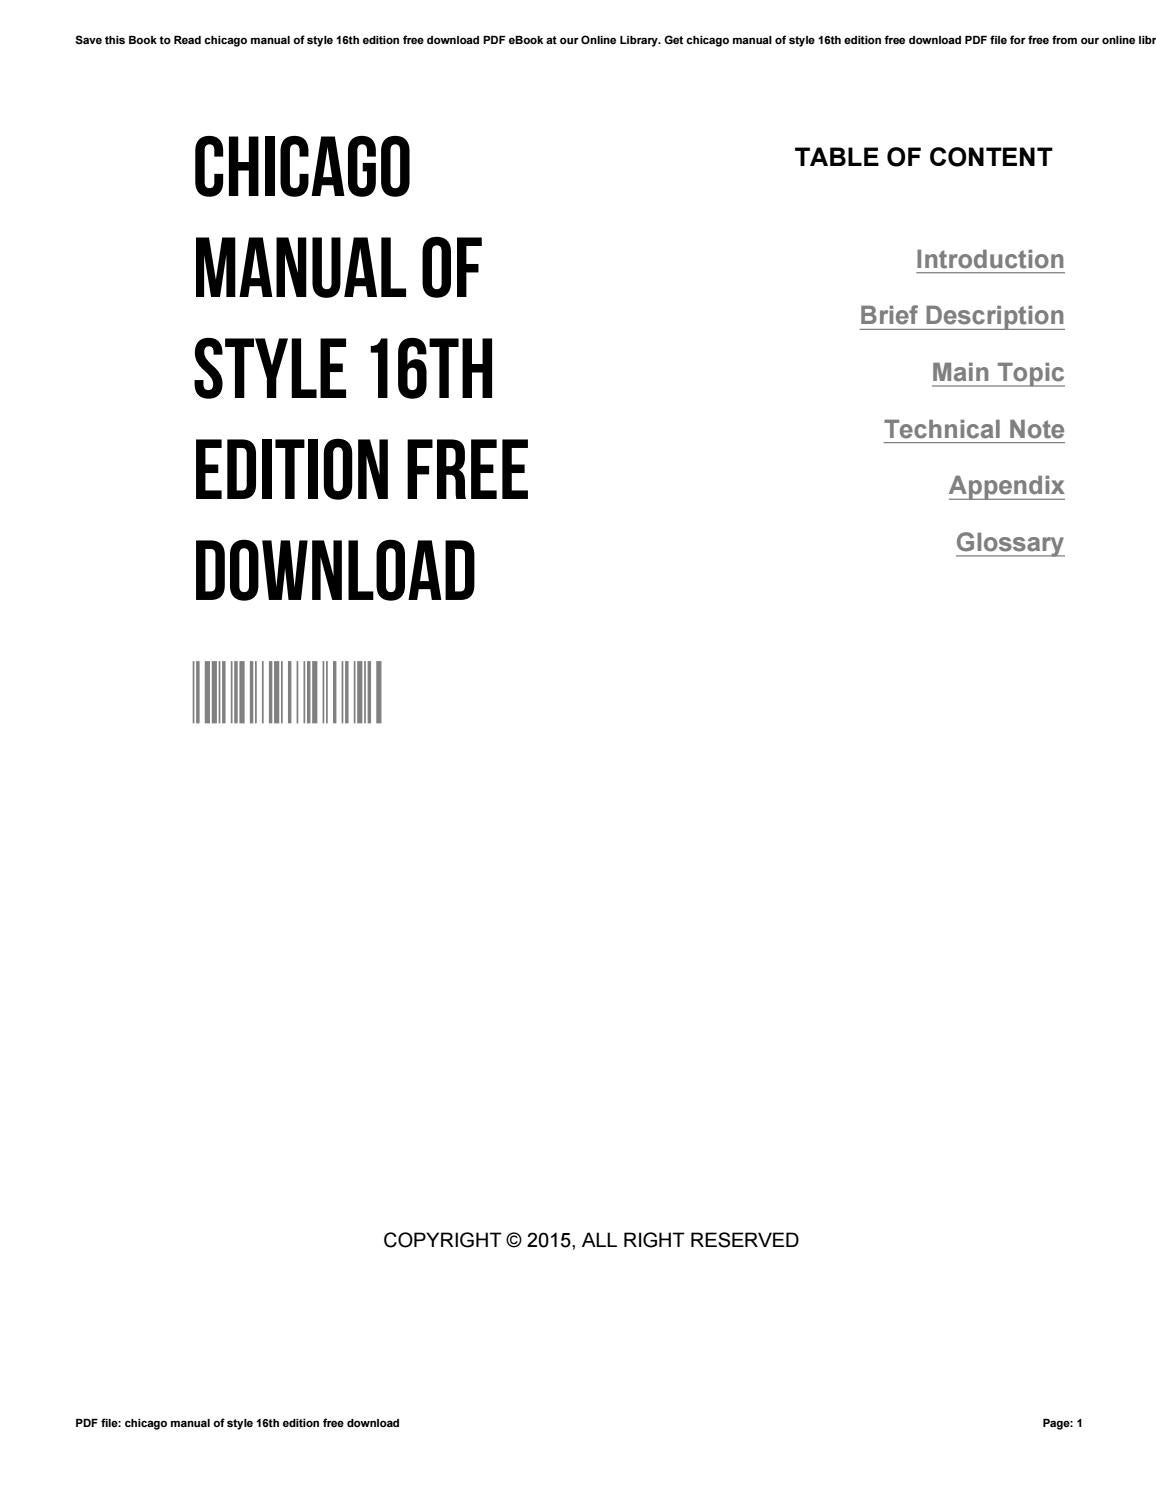 Chicago manual of style 16th edition free download by